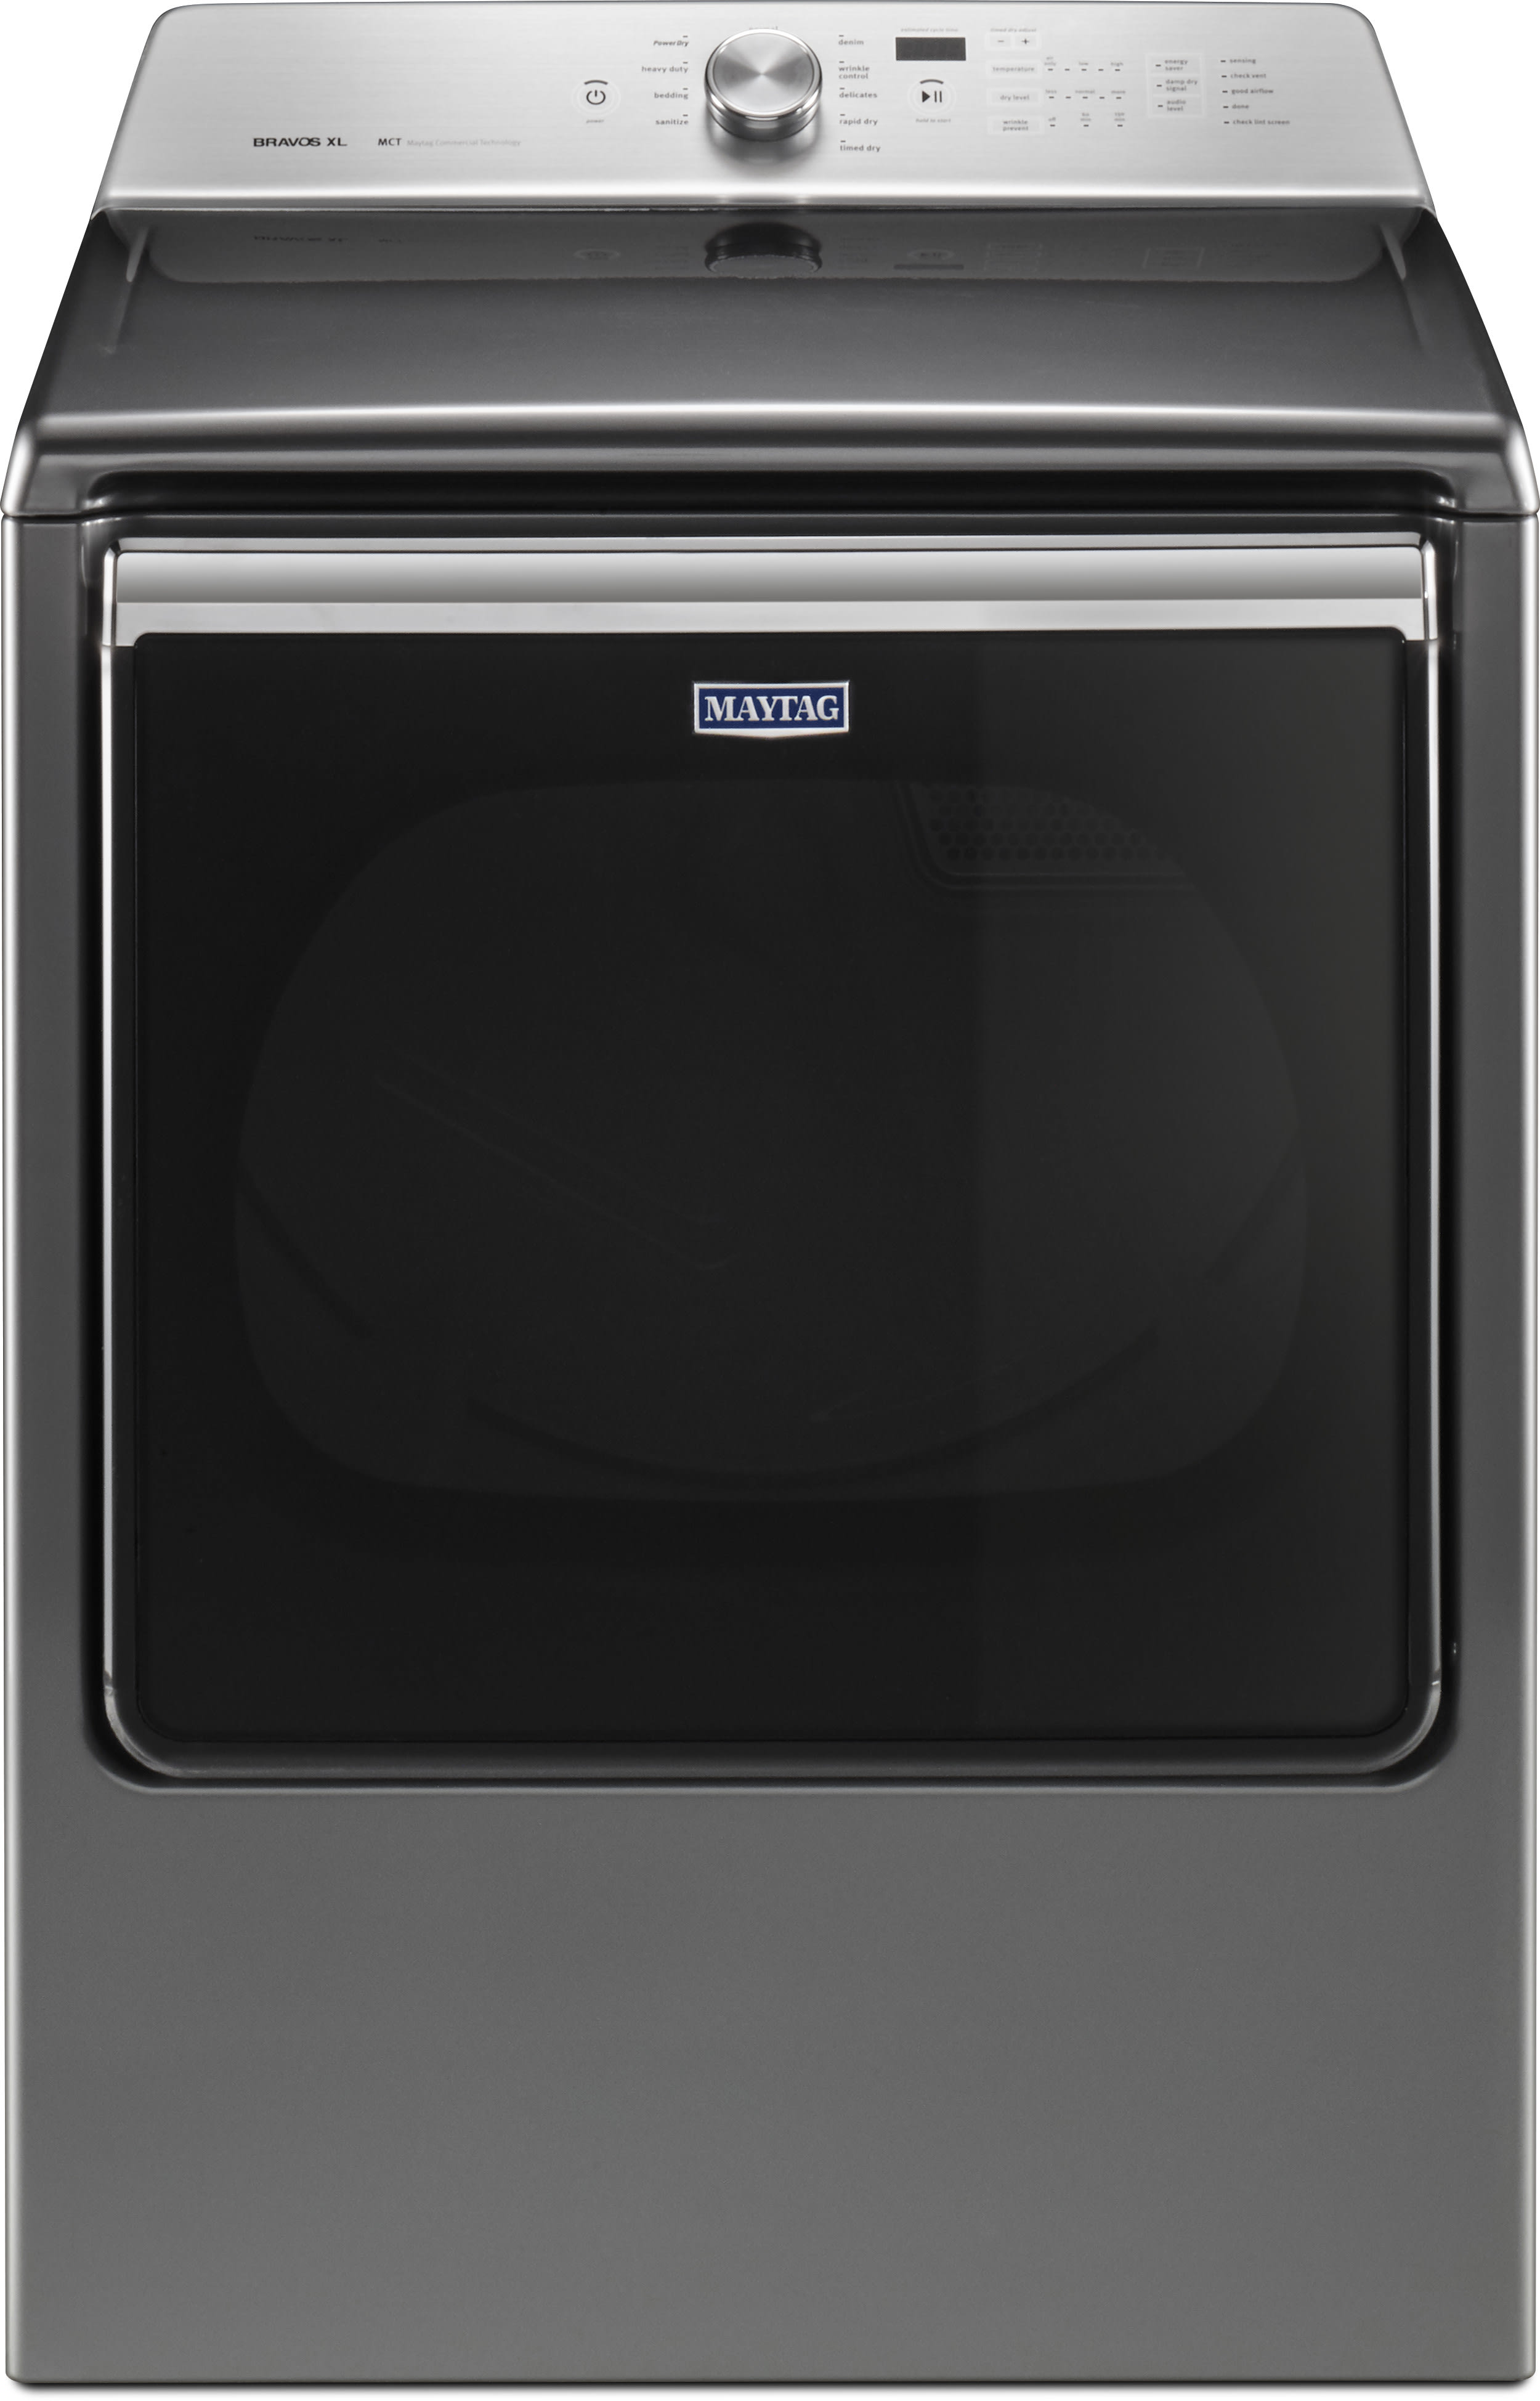 Maytag MEDB835DC 29 Inch Electric Dryer with PowerDry Cycle